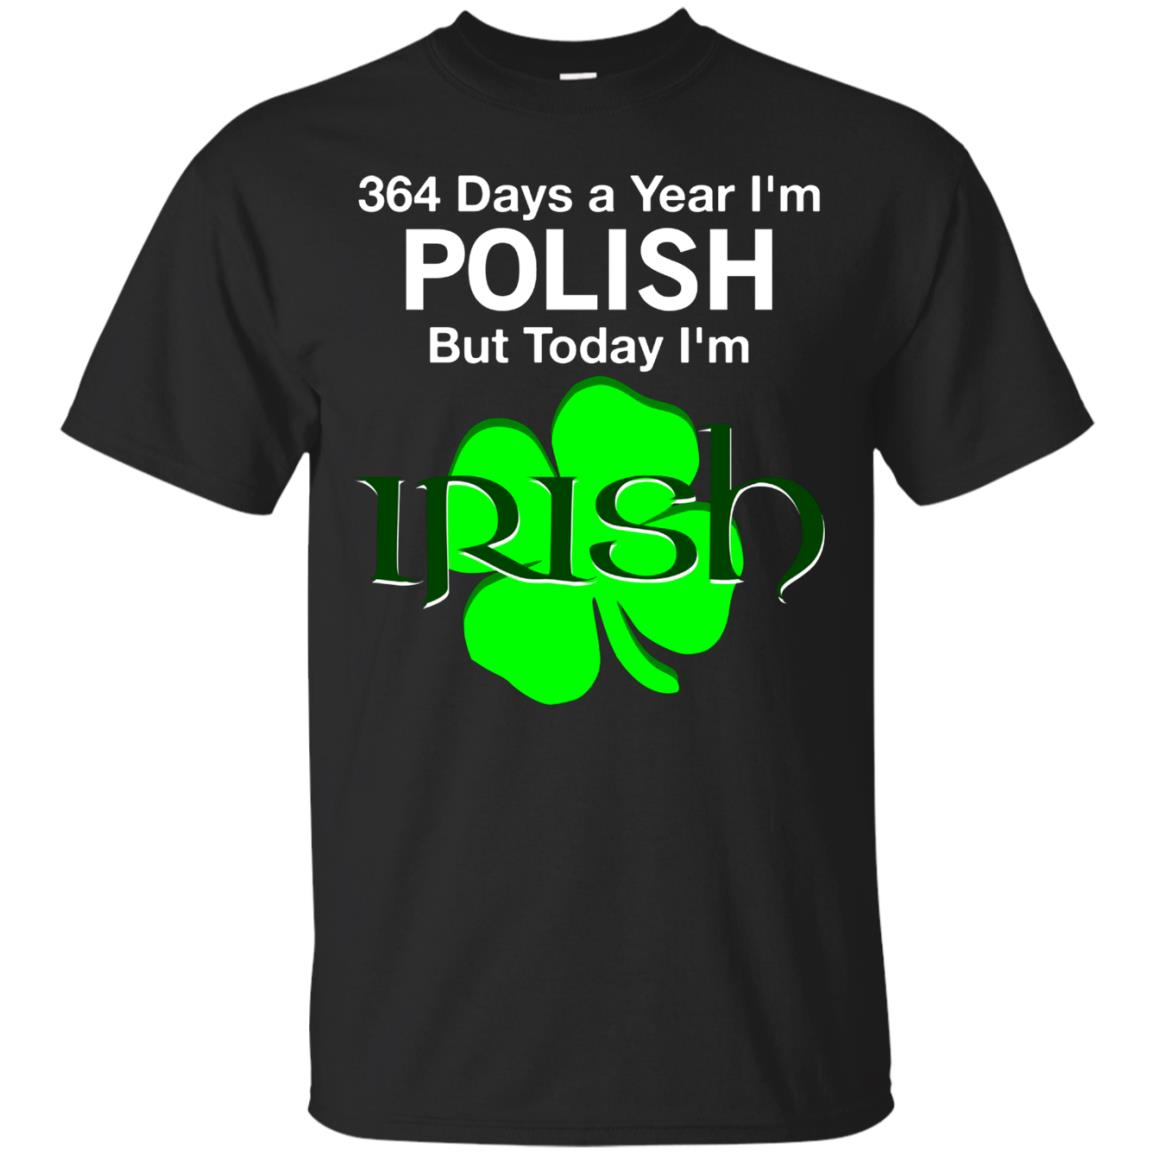 364 Days A Year I'm Polish, But Today I'm Irish T Shirt 99promocode